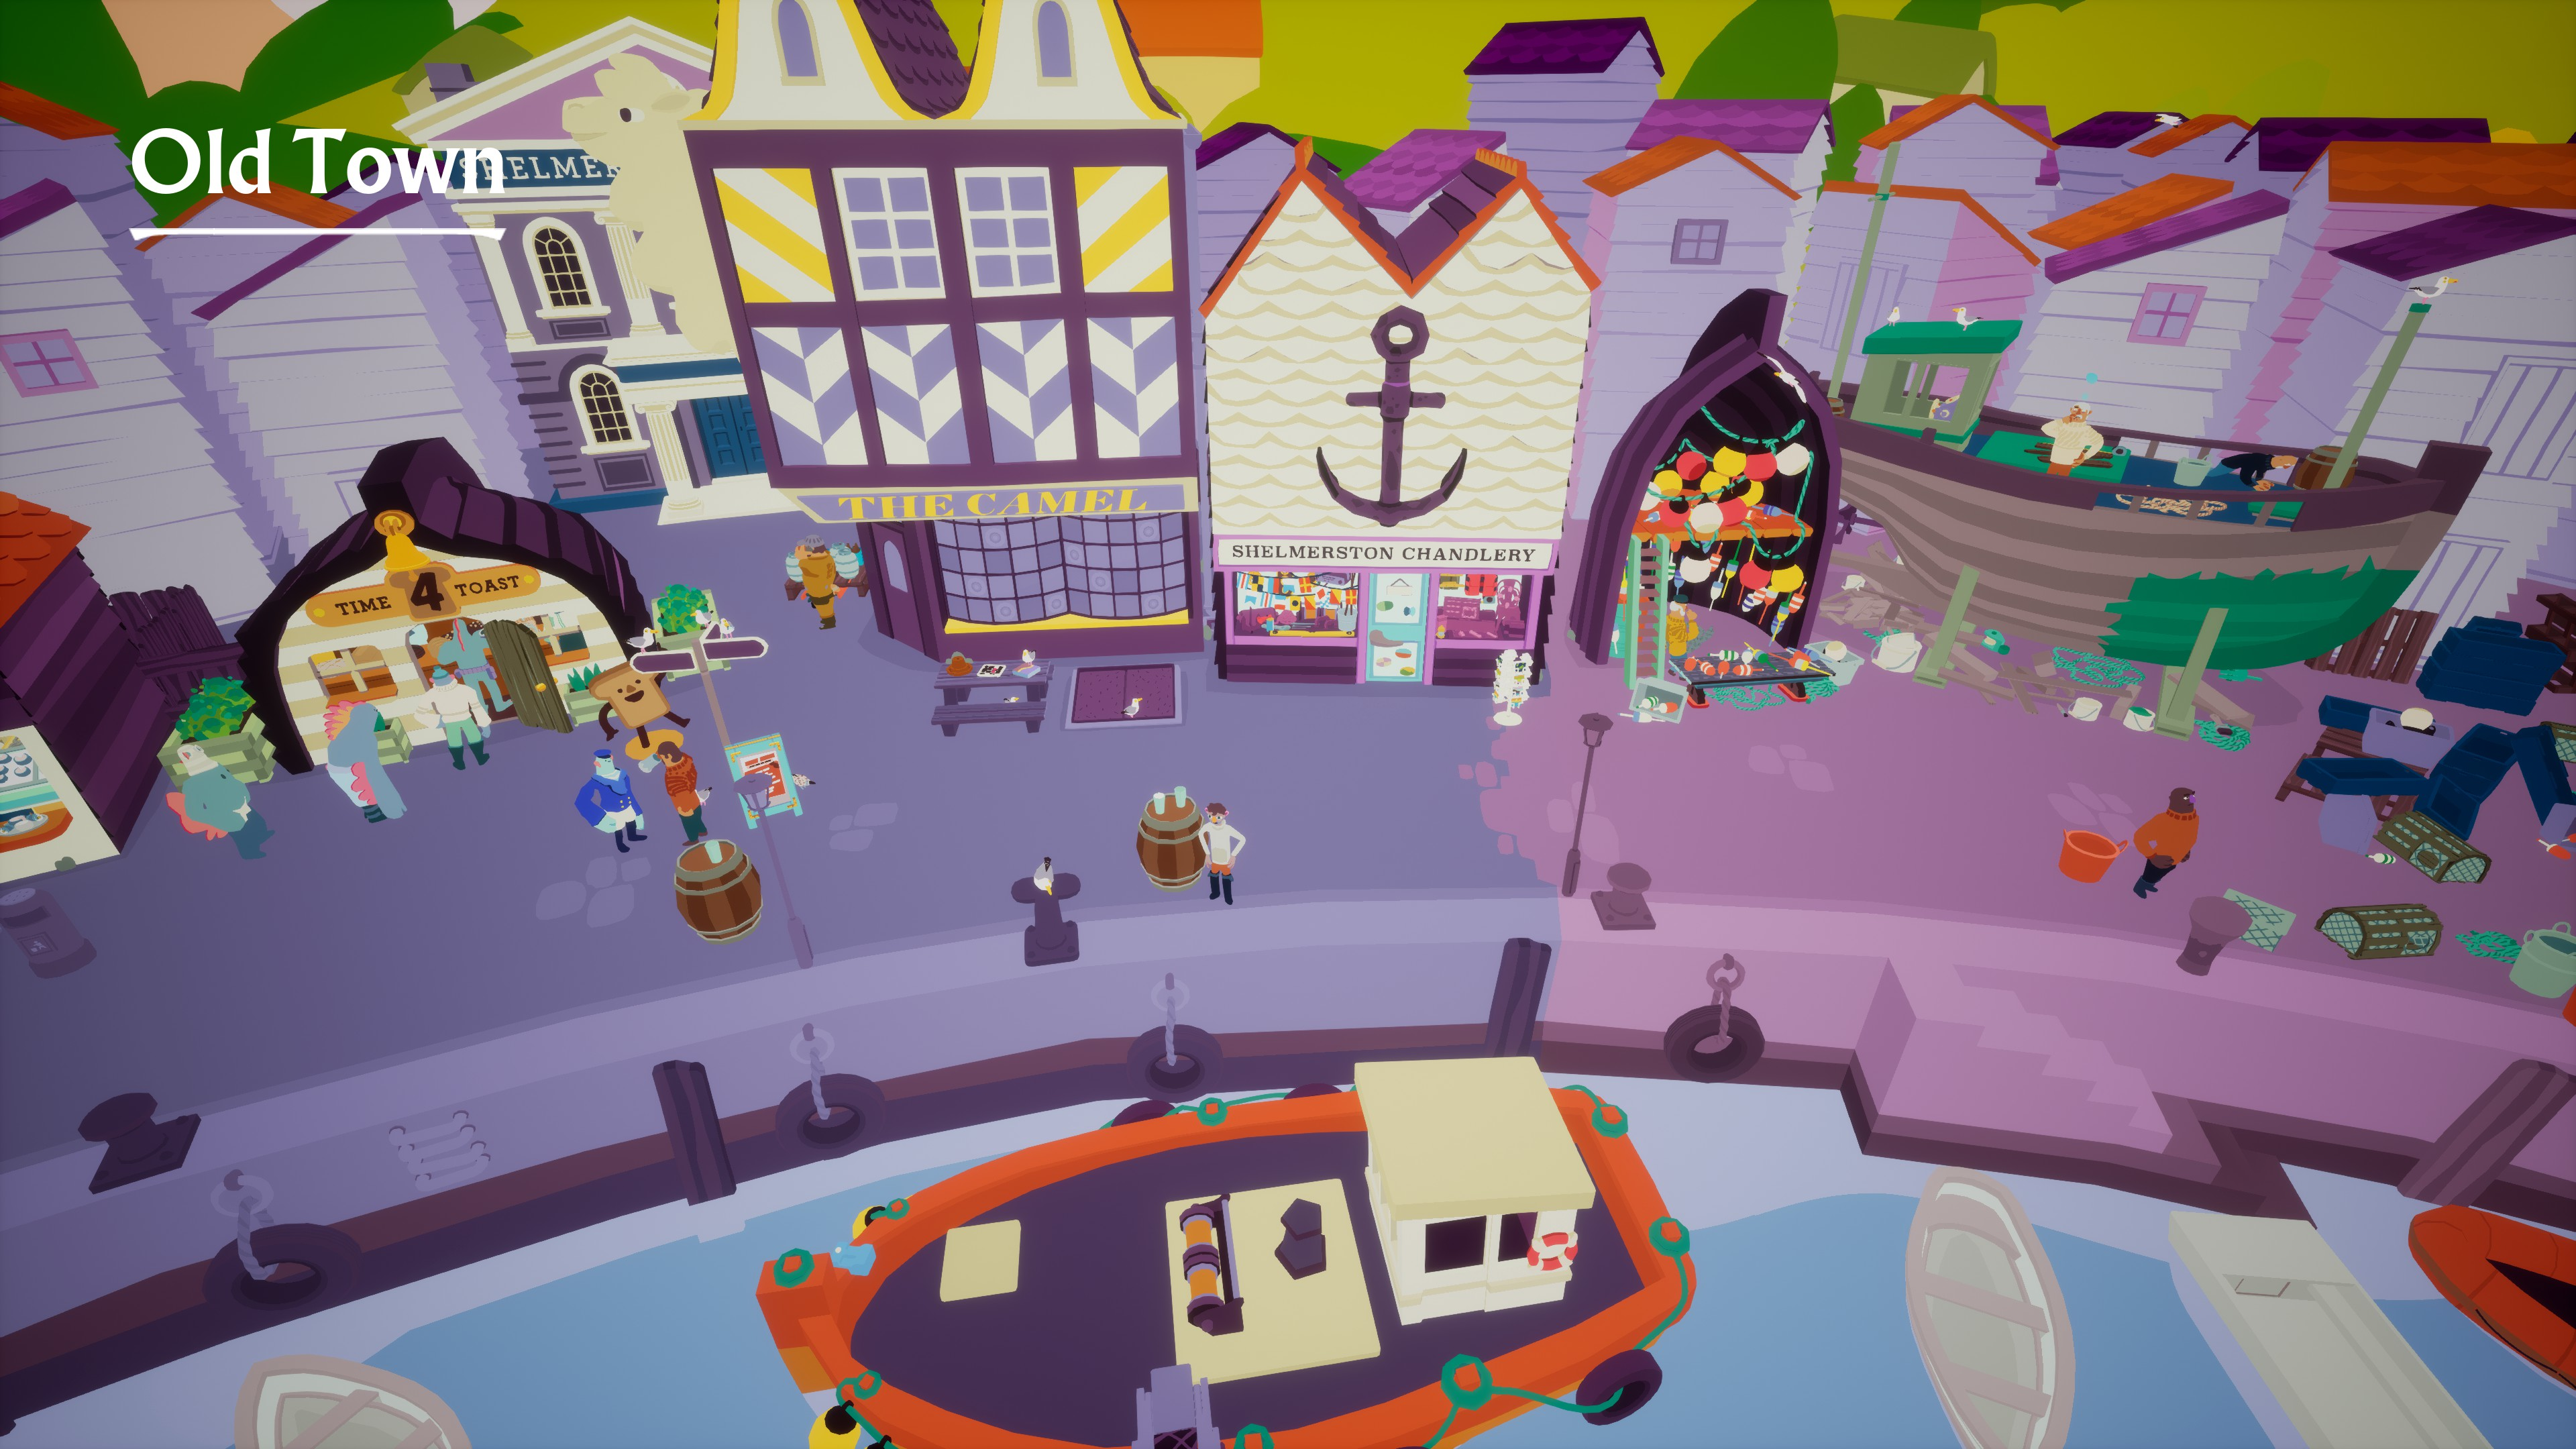 I Am Dead. A harbor called Old Town showing a number of shops and people along a pier.